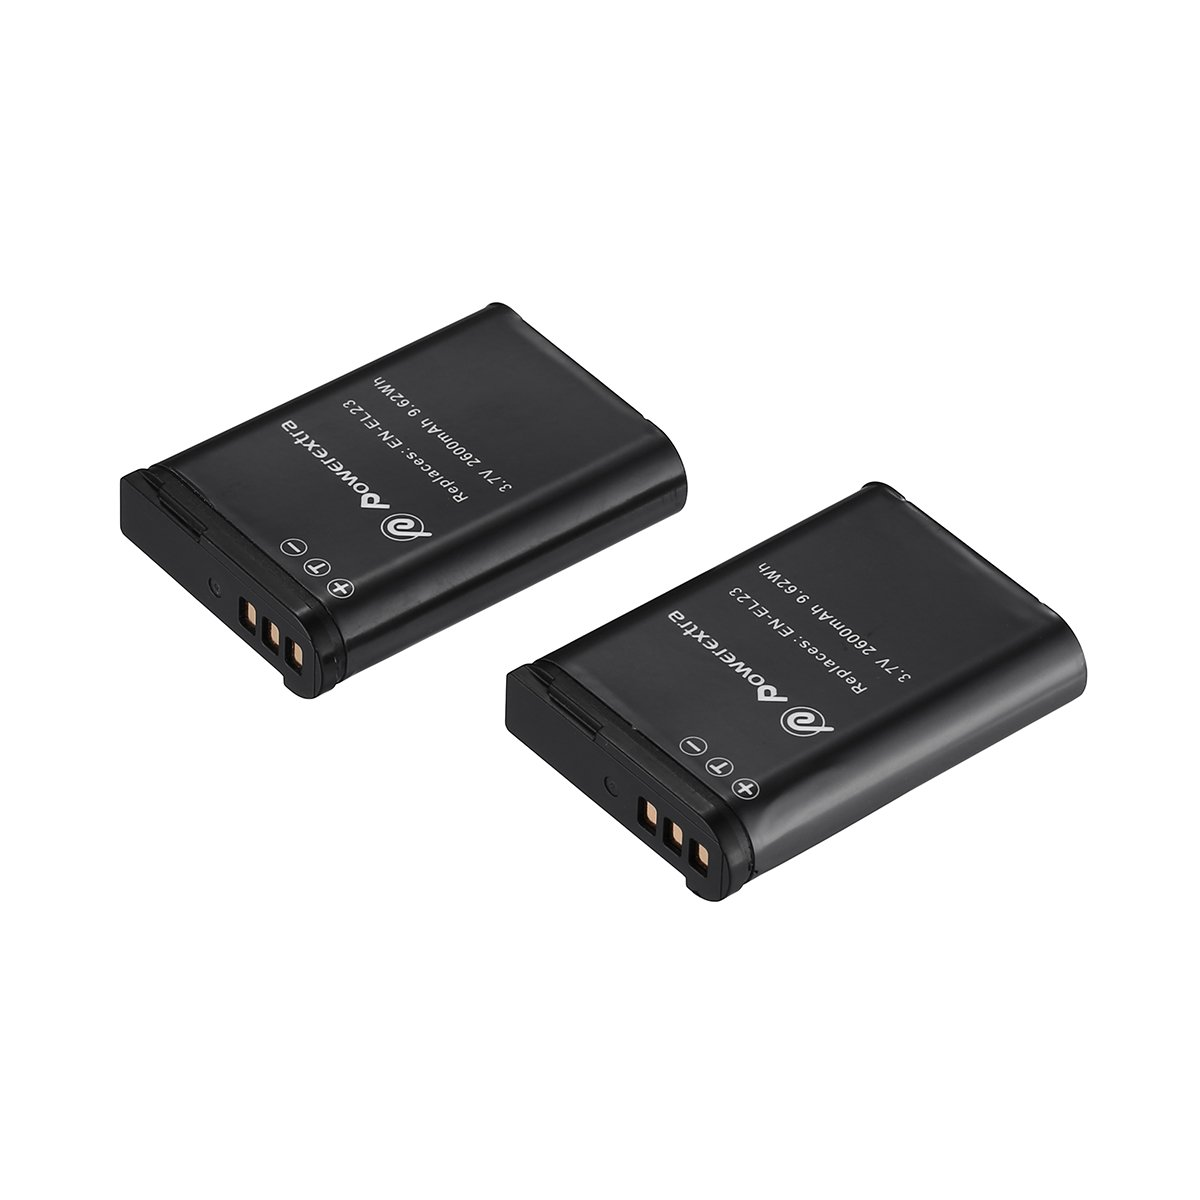 Powerextra 2 Pack Nikon EN-EL23 2600mAh High Capacity Replacement Battery Compatible with Nikon Coolpix P600, P610, B700,P900, S810c